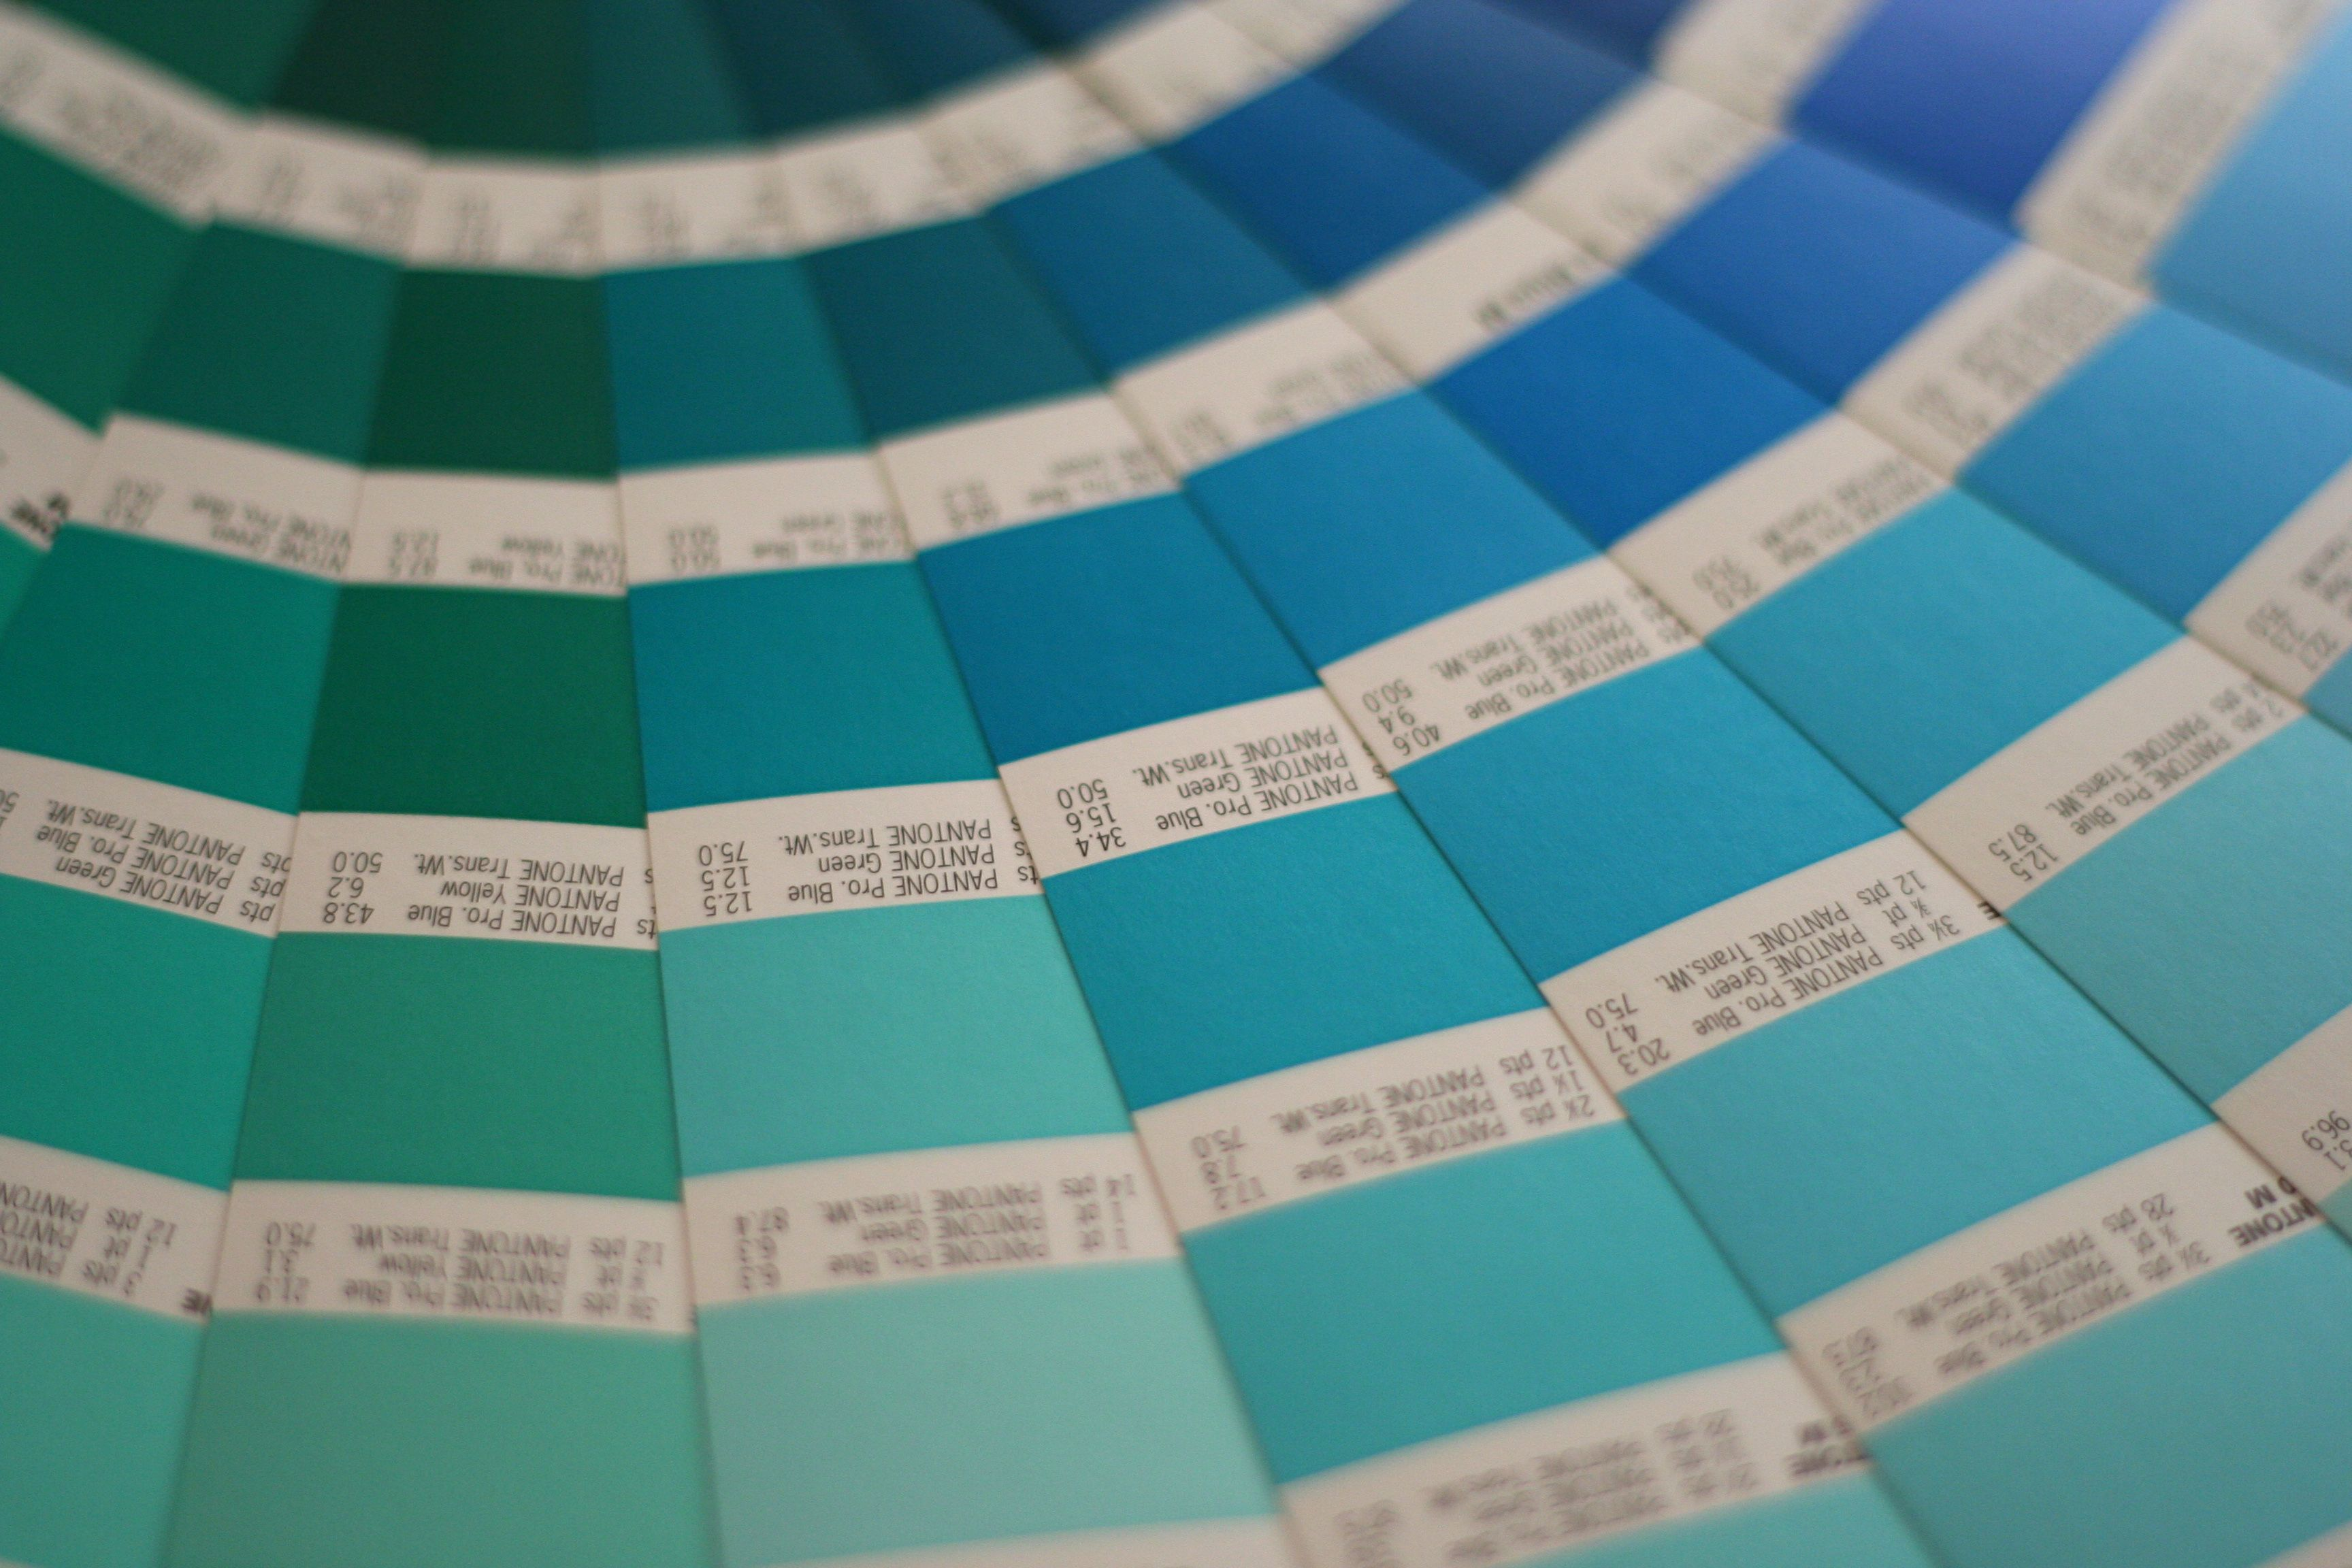 Teal Color - Blue Teal Green Color Swatches